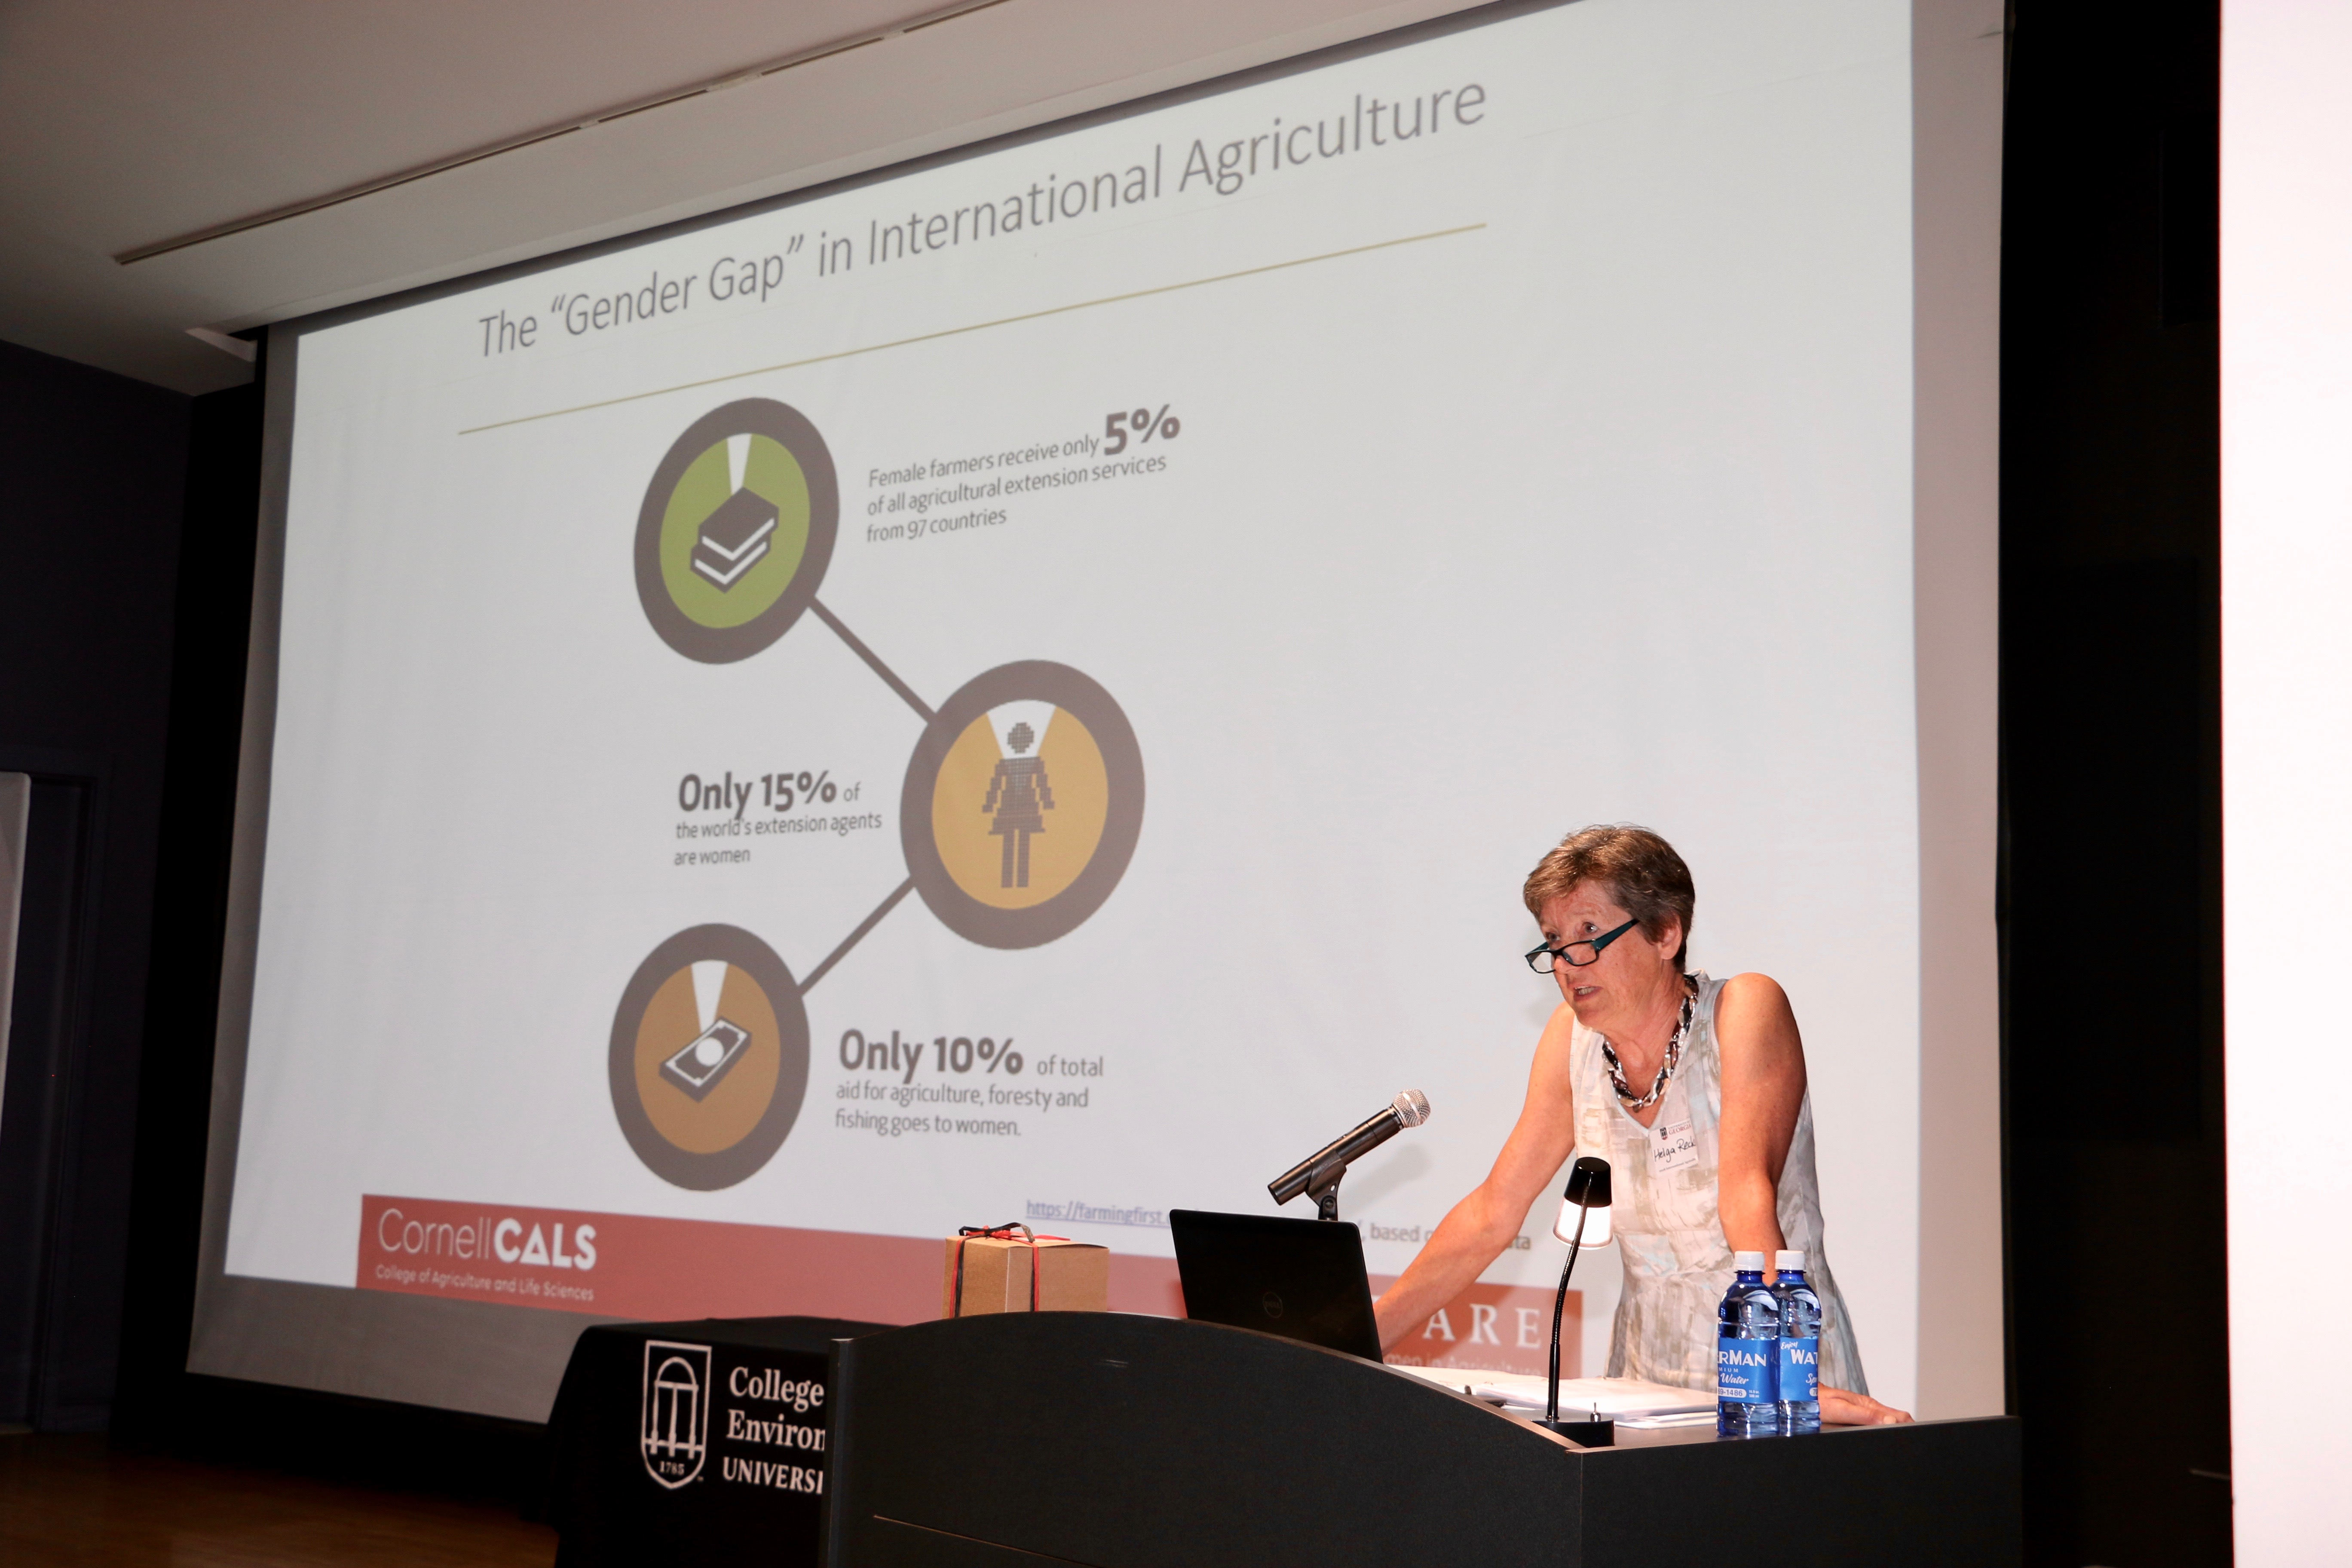 Helga Recke, a Visiting Fellow in Cornell University's College of Agriculture and Life Sciences' Advancing Women in Agriculture through Research and Education (AWARE) program, spoke at the International Agriculture Day Lecture and Reception.